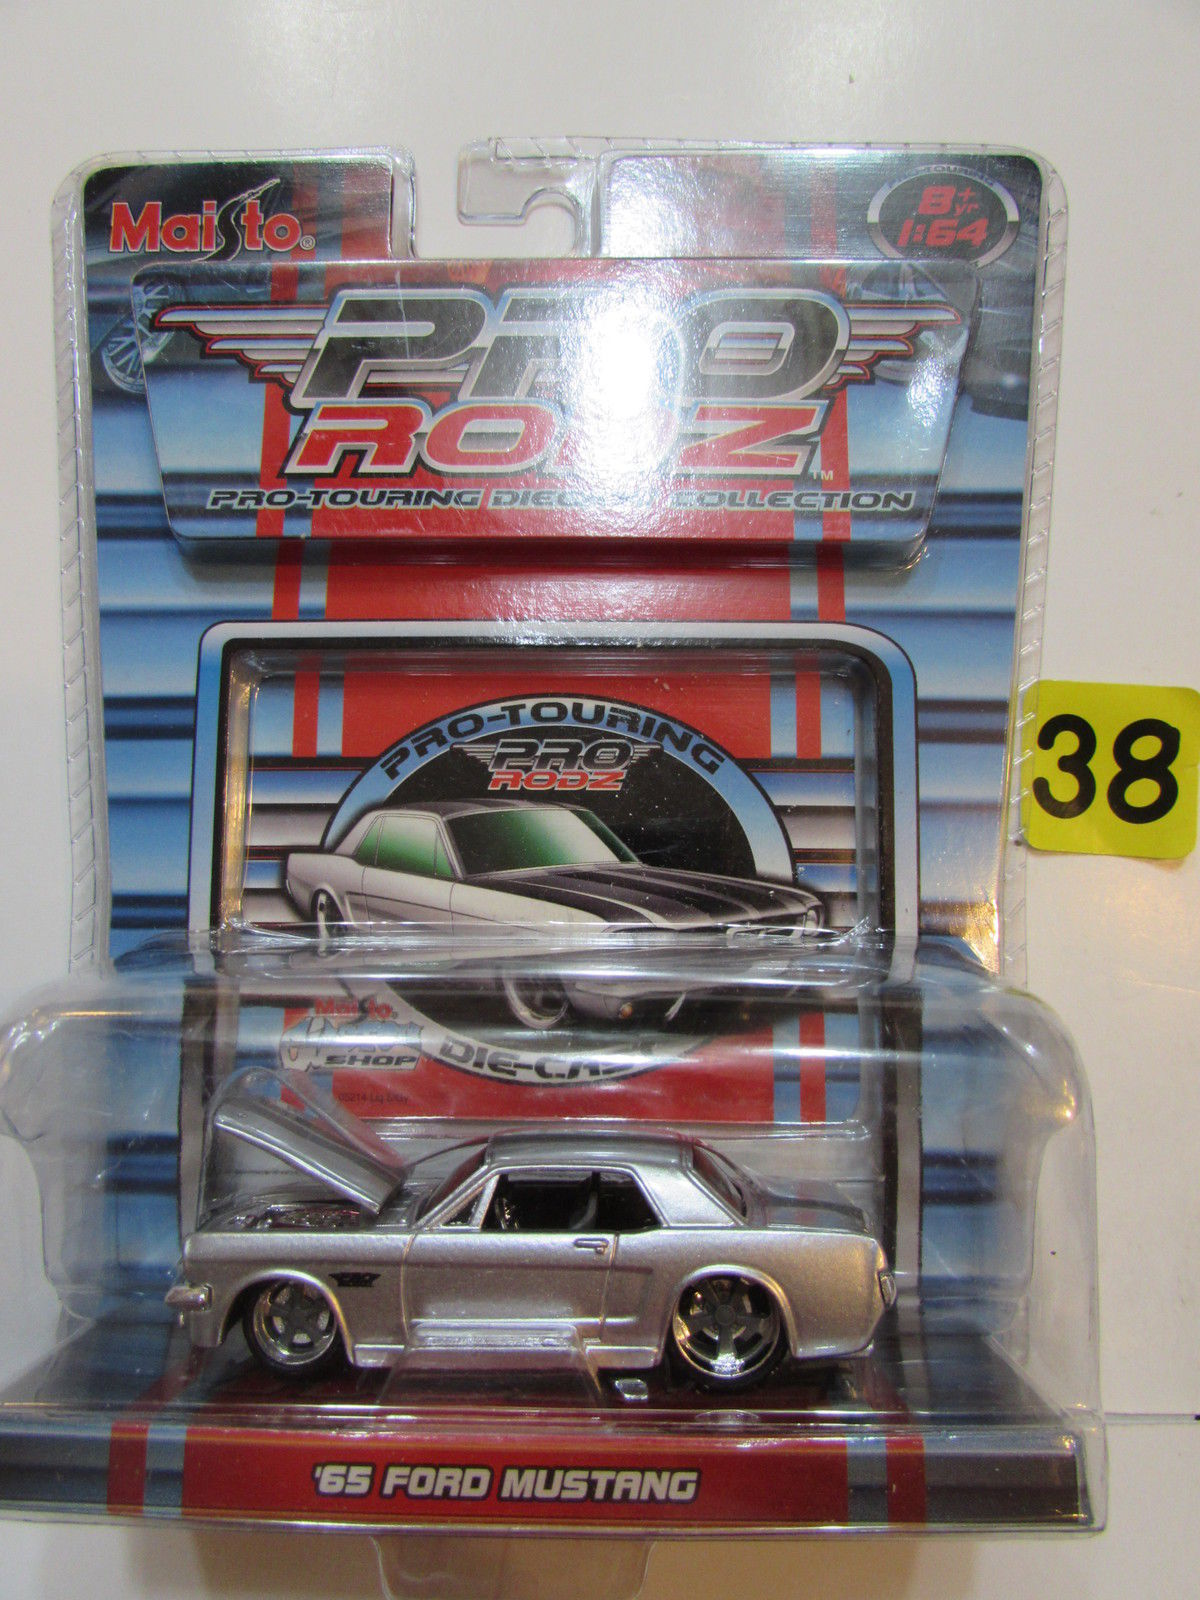 MAISTO PRO RODZ 1:64 '65 FORD MUSTANG GOLD